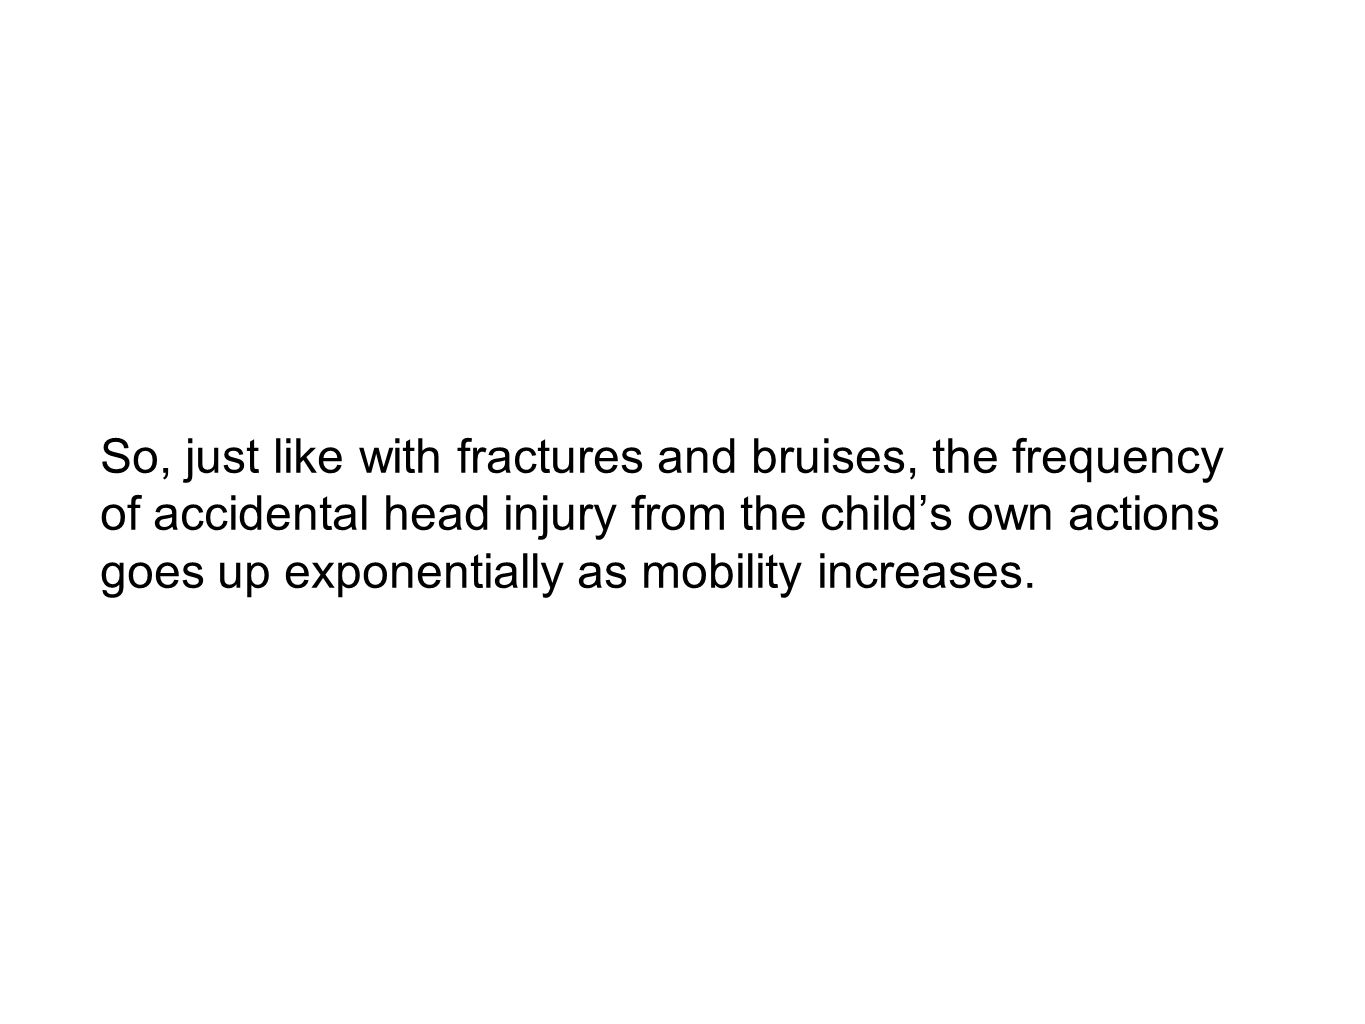 So, just like with fractures and bruises, the frequency of accidental head injury from the child's own actions goes up exponentially as mobility increases.